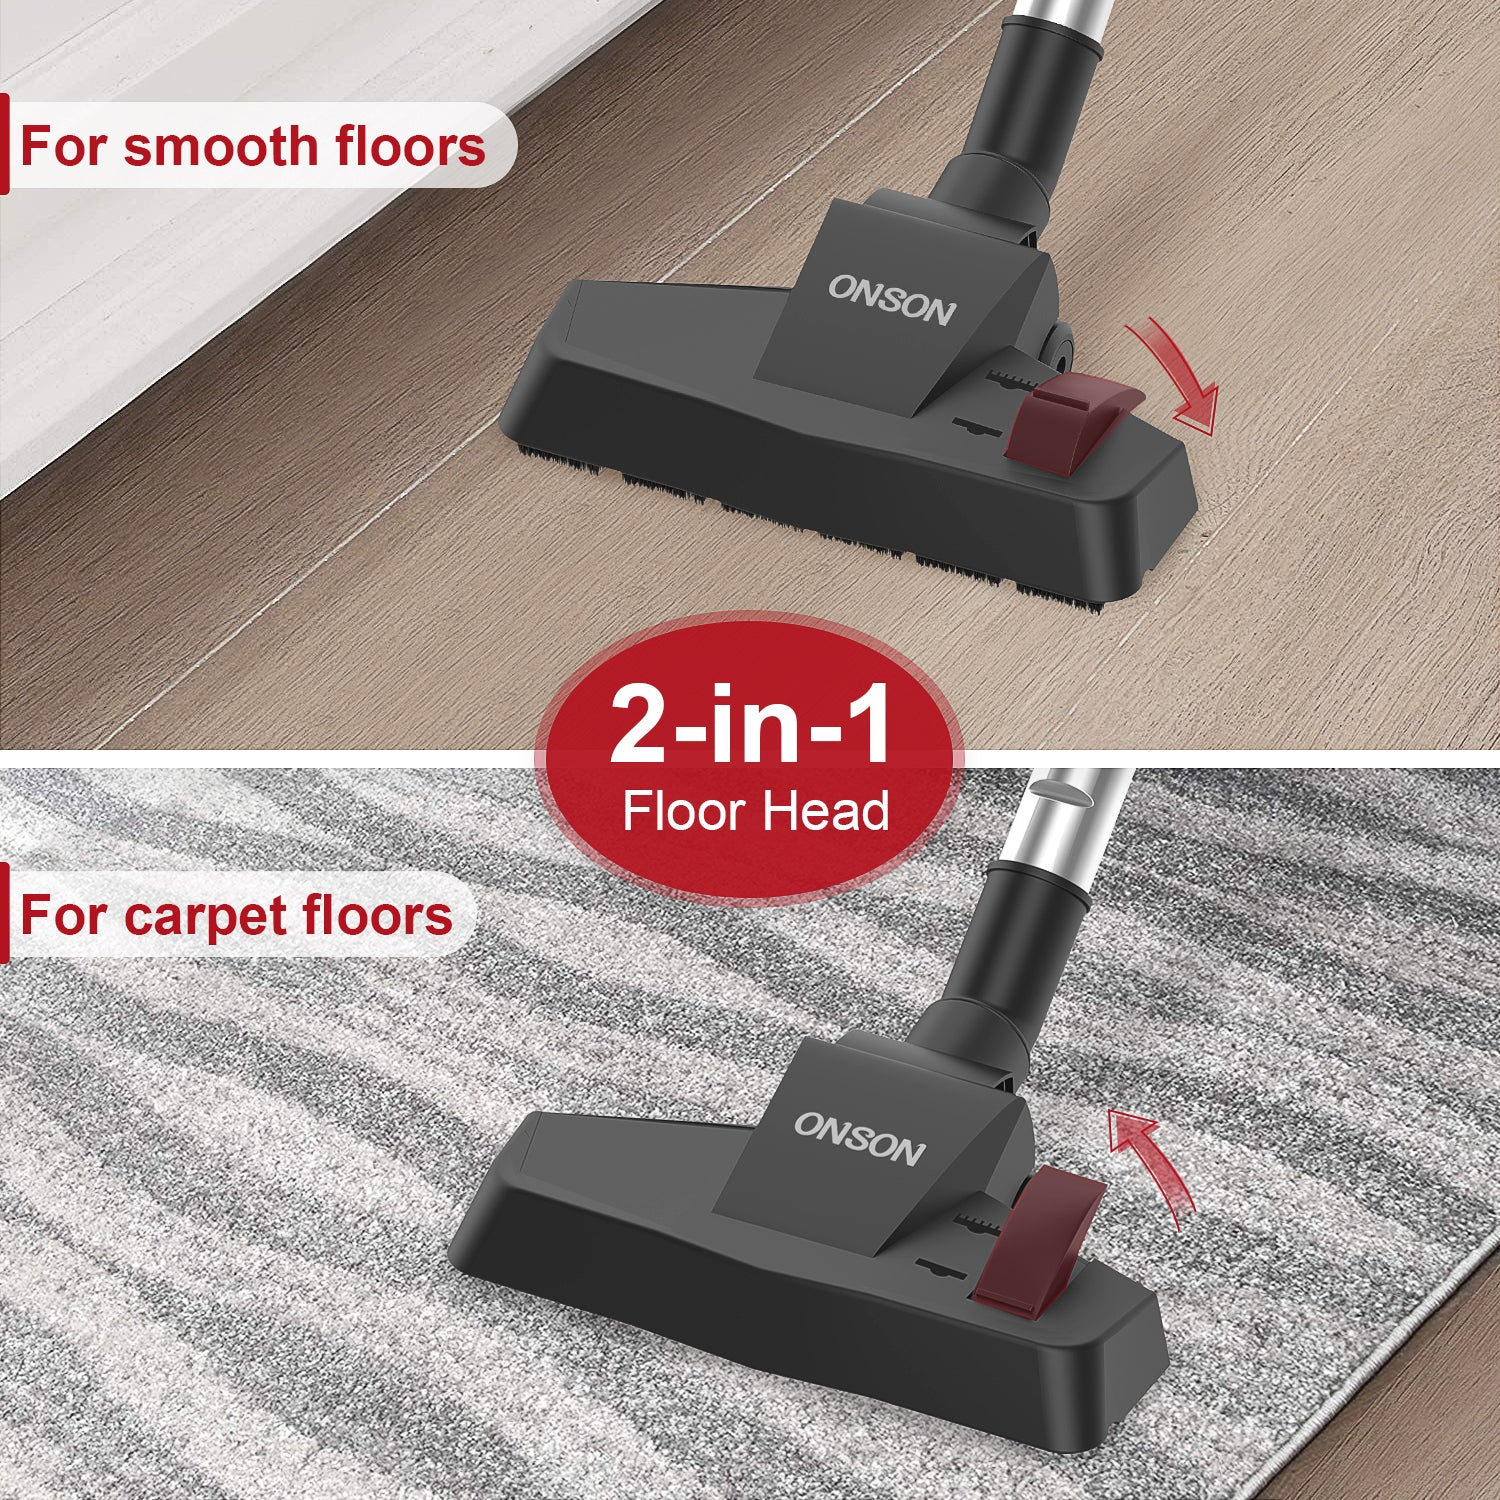 ONSON Vacuum Cleaner Corded, 16KPa Powerful Suction